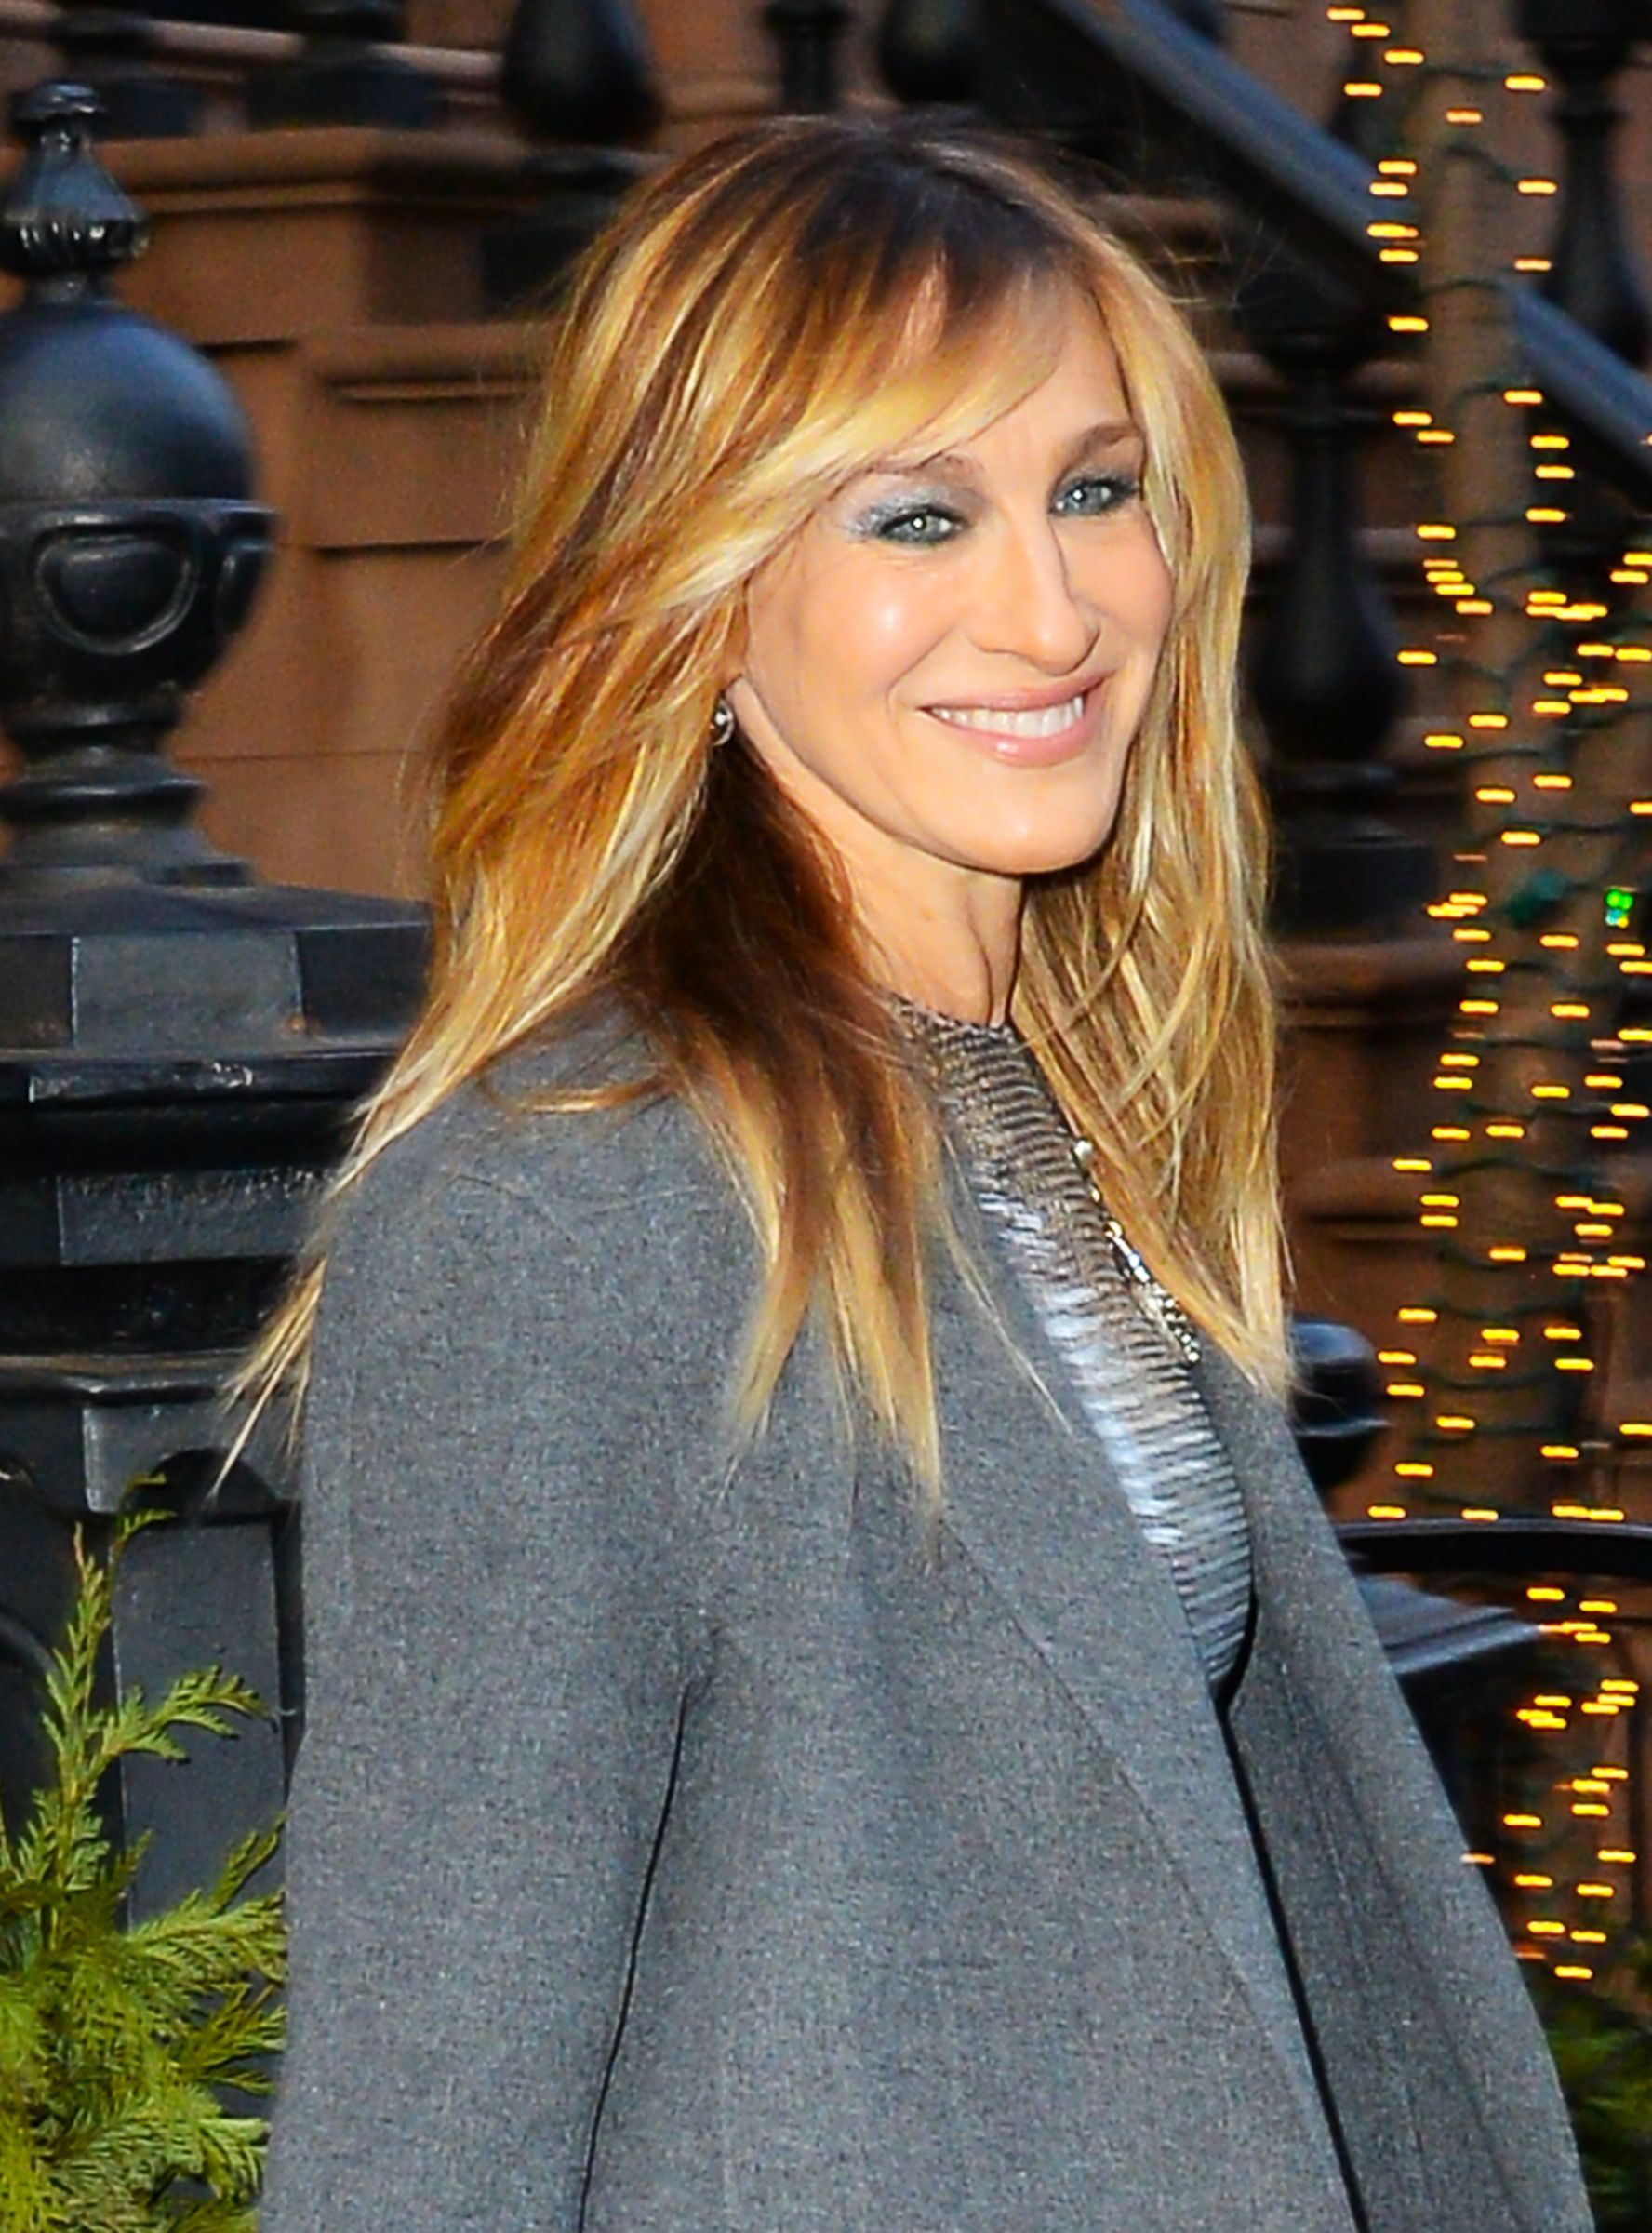 Sarah Jessica Parker s New Haircut Looks Familiar—But It s Not What